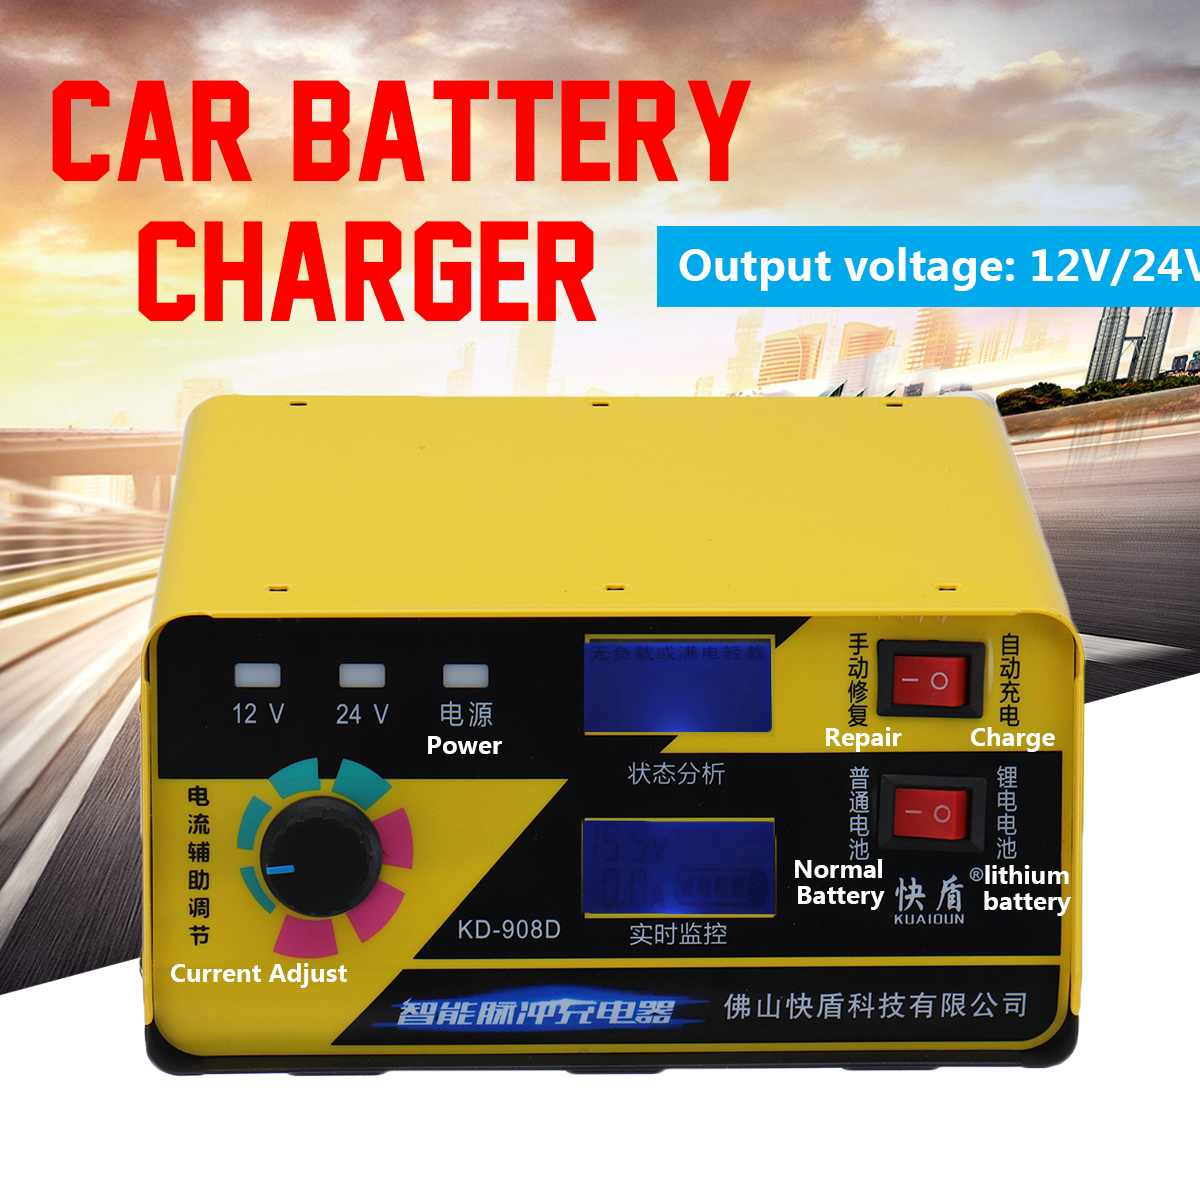 260W 12/24V 20A Pulse-Intelligent Battery Charger Pulse-Repair Car Motorcycle Wet/Dry Lead Acid EU/US Plug with LCD Display260W 12/24V 20A Pulse-Intelligent Battery Charger Pulse-Repair Car Motorcycle Wet/Dry Lead Acid EU/US Plug with LCD Display